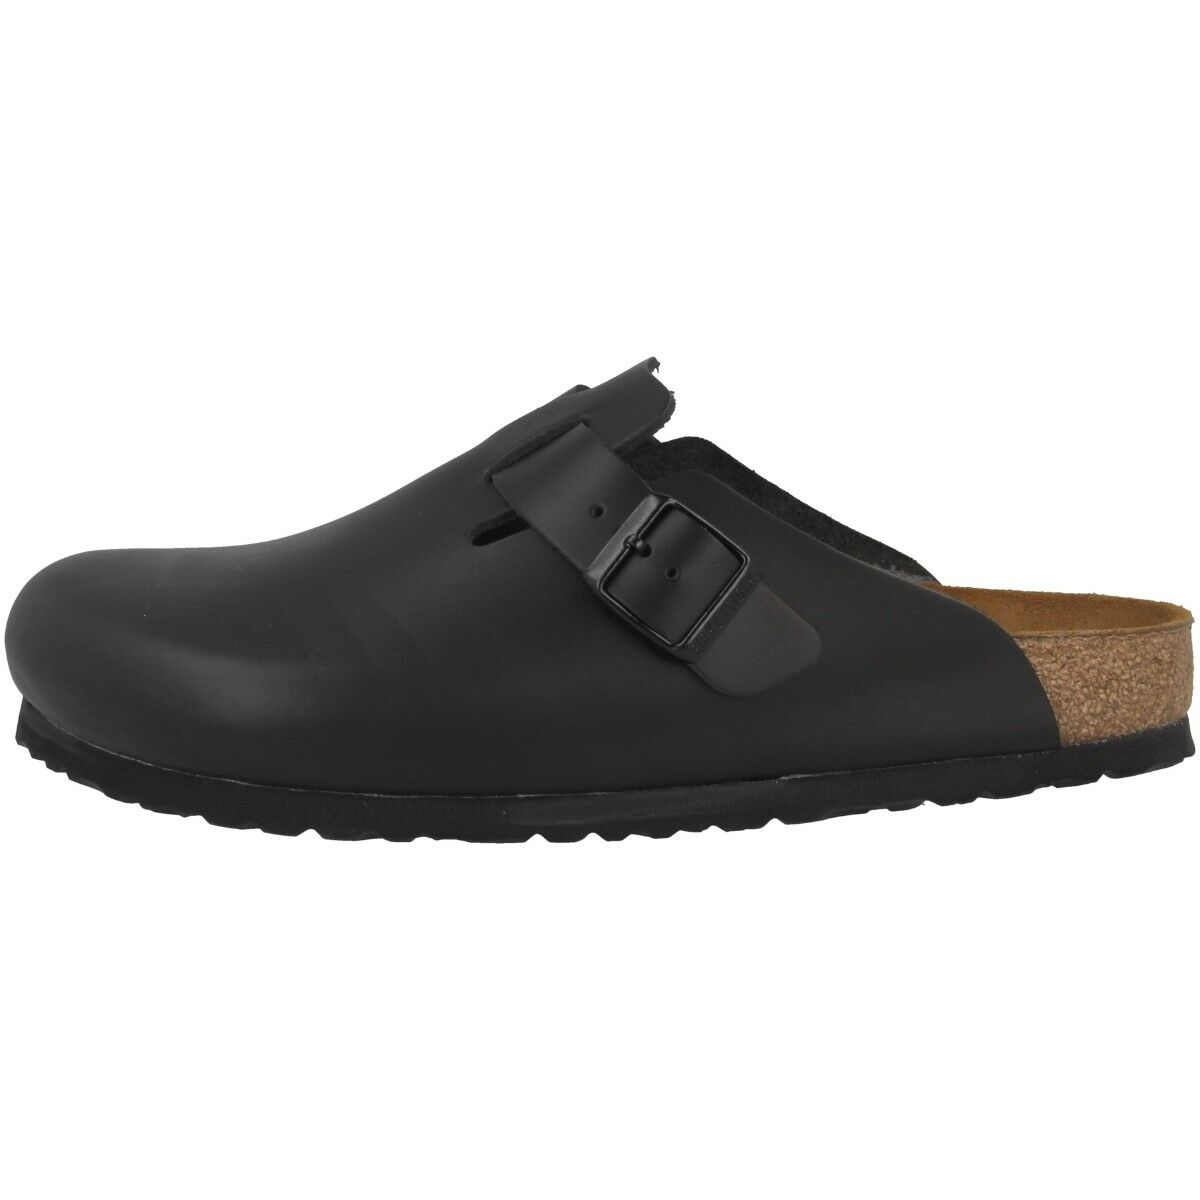 Birkenstock Boston Glattleder Clogs Schuhe black 060191 Pantoletten Weite normal